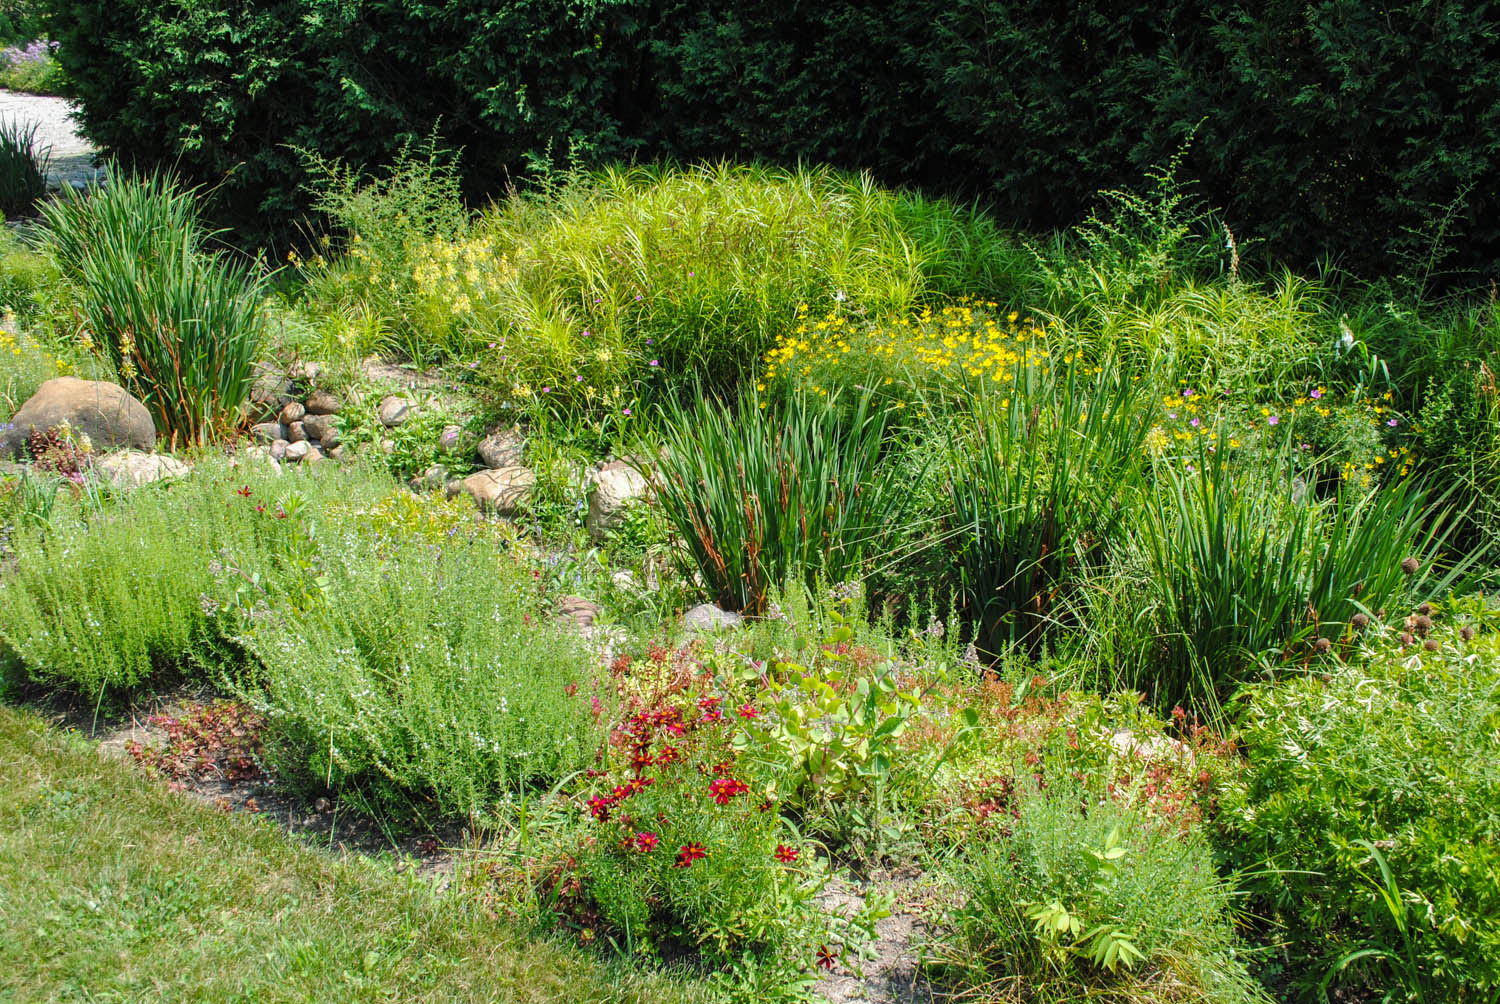 This part of the garden featured a dry creek bed.